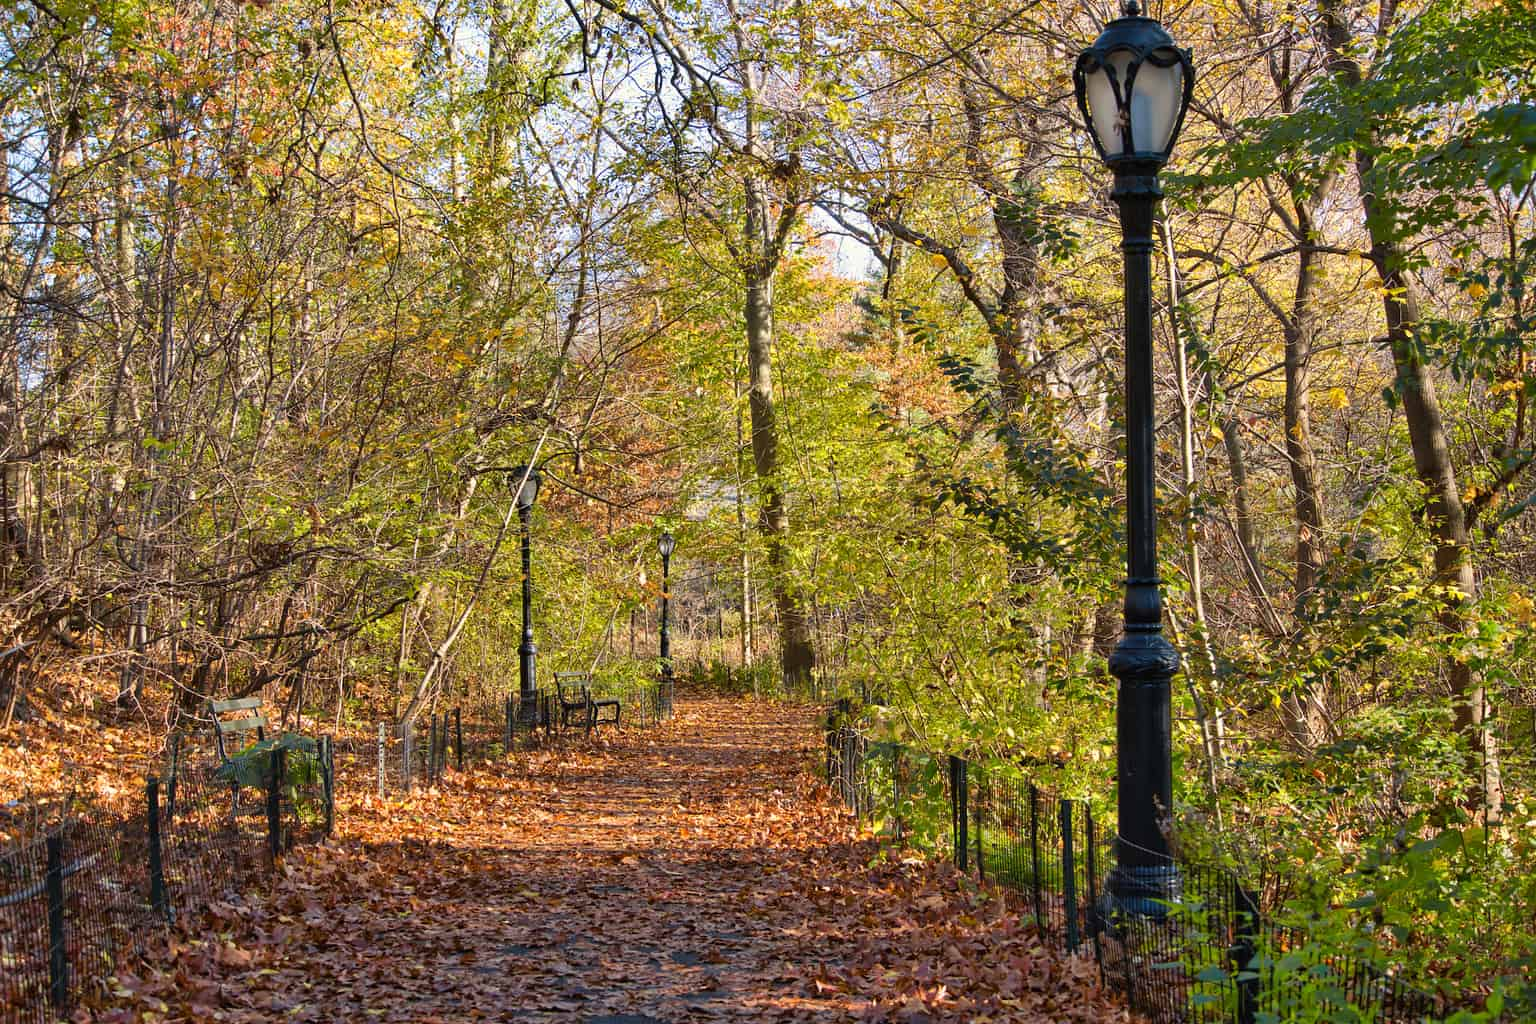 The Ramble of Central Park | Trails, Viewpoints, Map and More